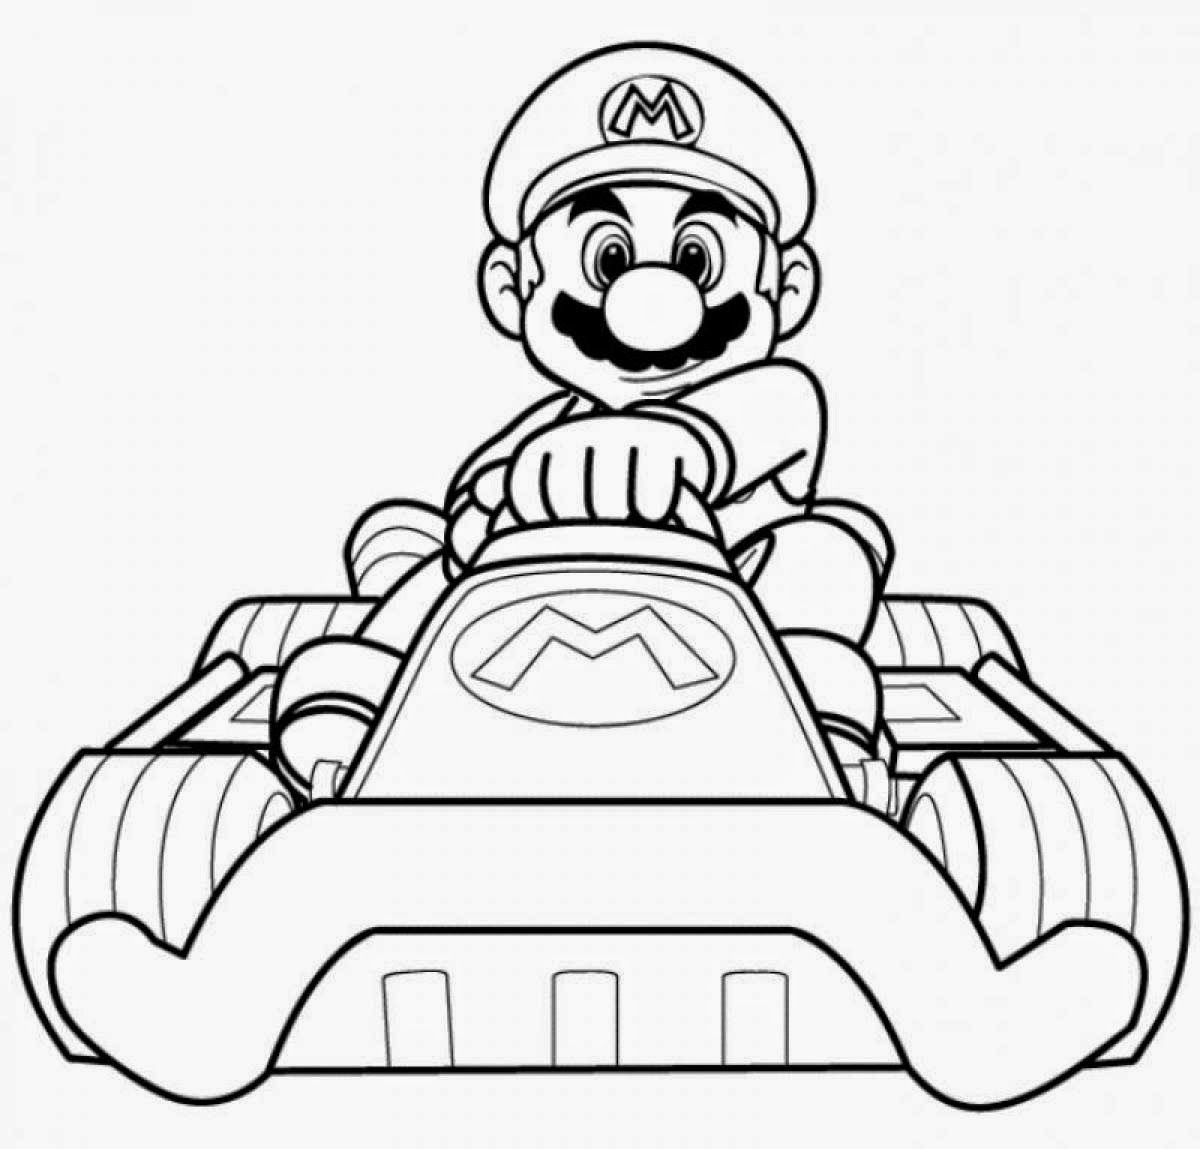 printing coloring pages mario kart 8